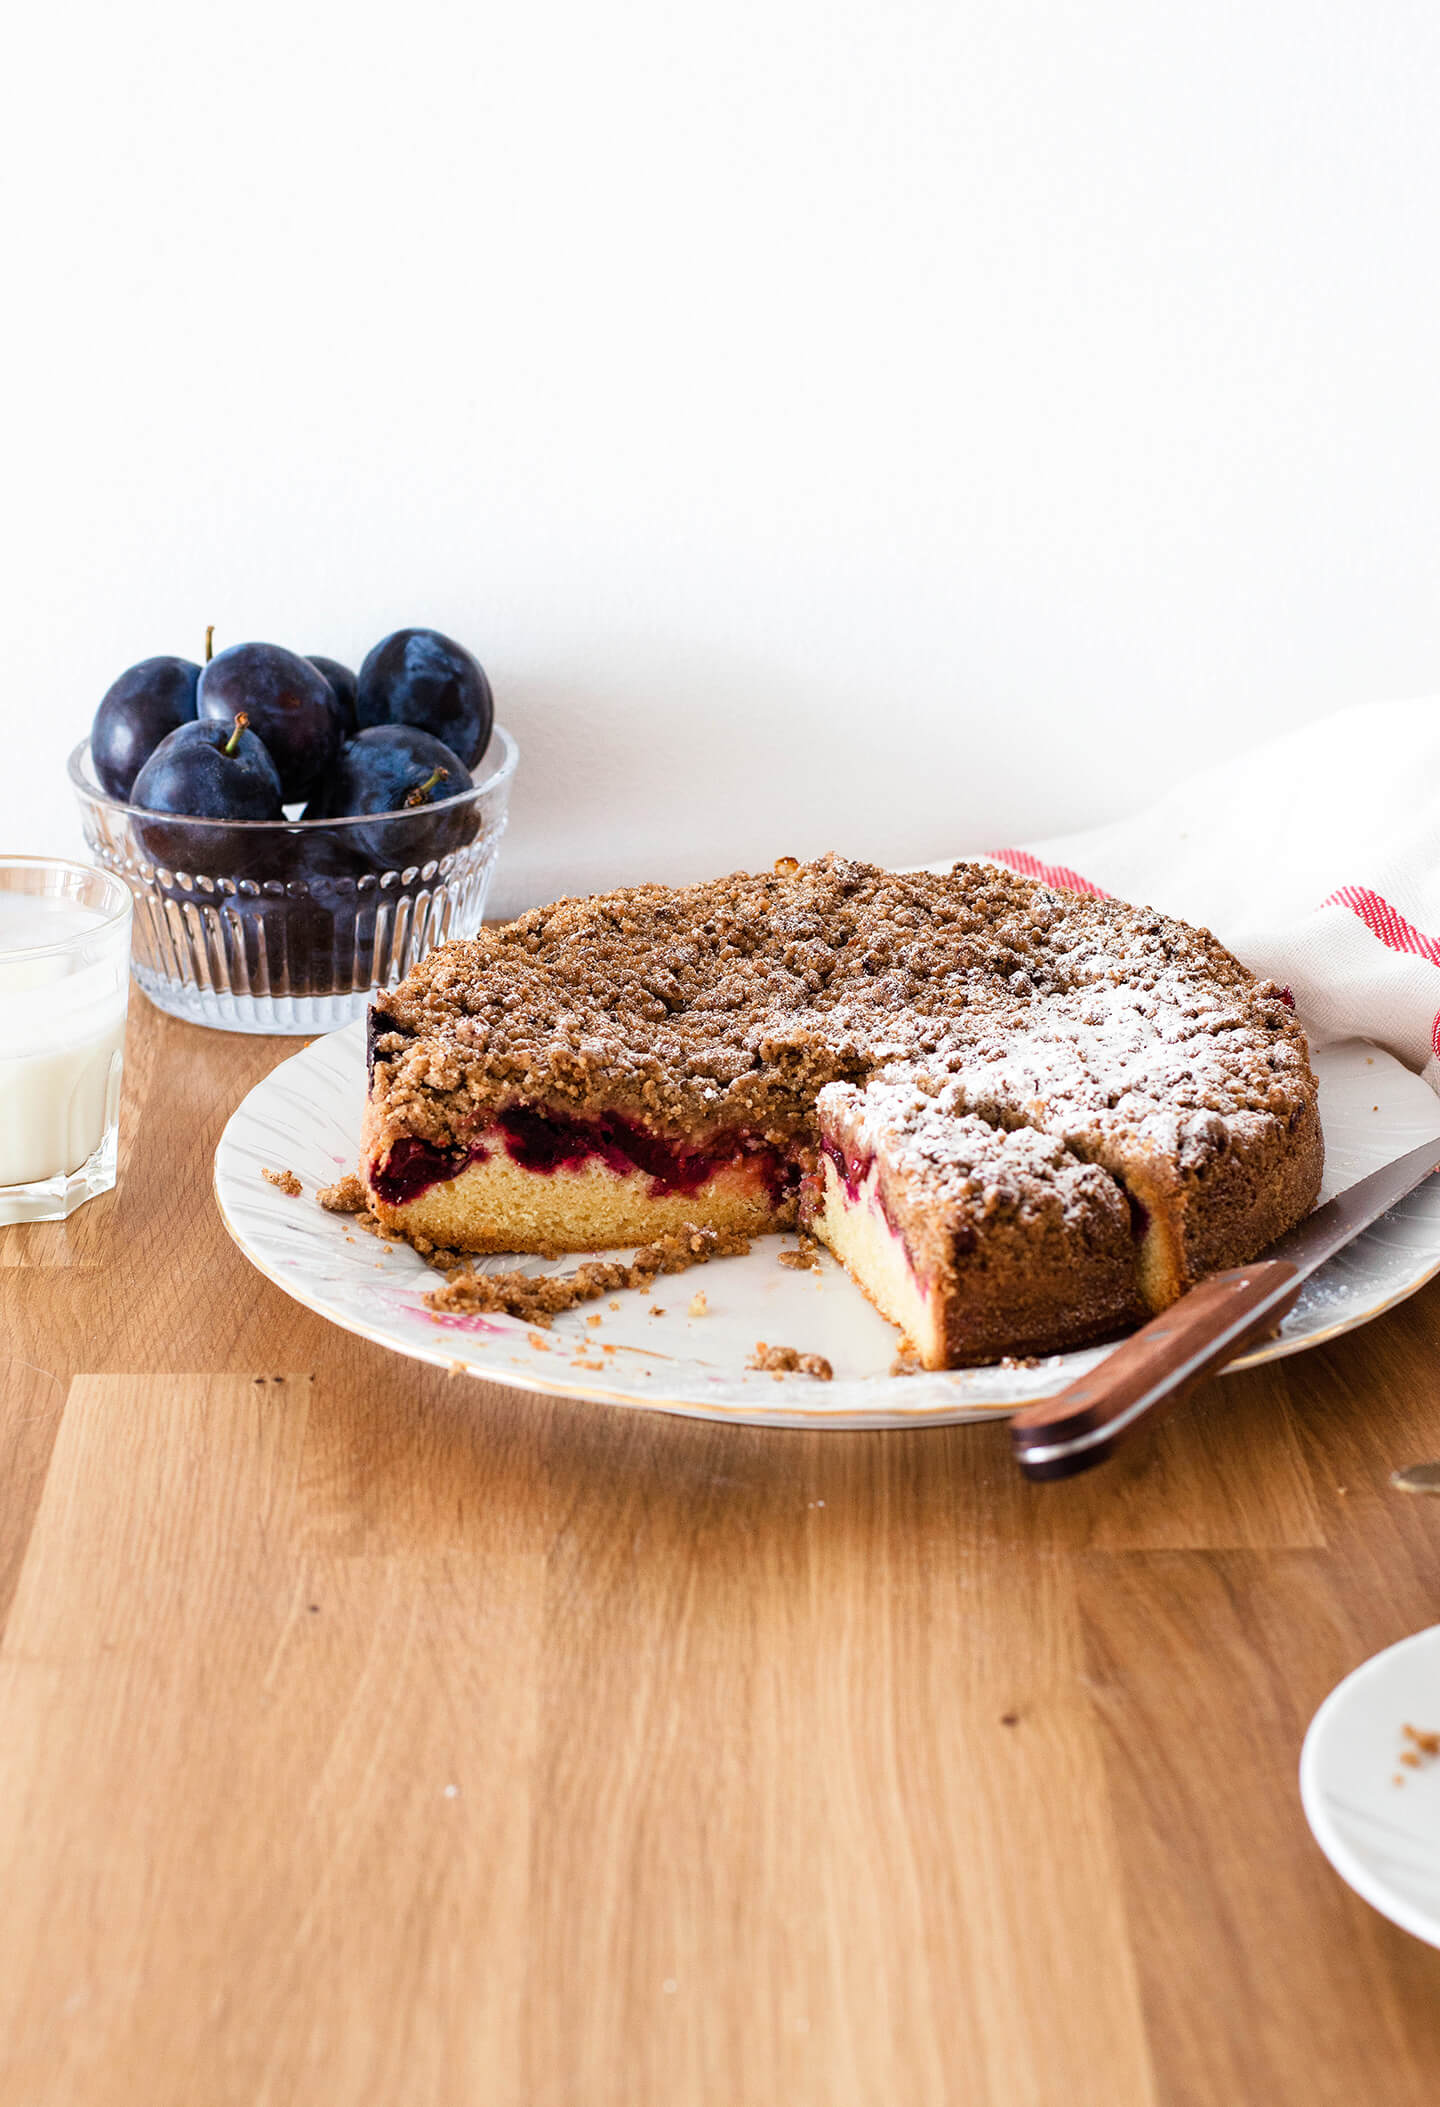 Recipe for easy plum streusel coffee cake, perfect late summer dessert! Made with purple Italian plums and buttery cinnamon streusel.